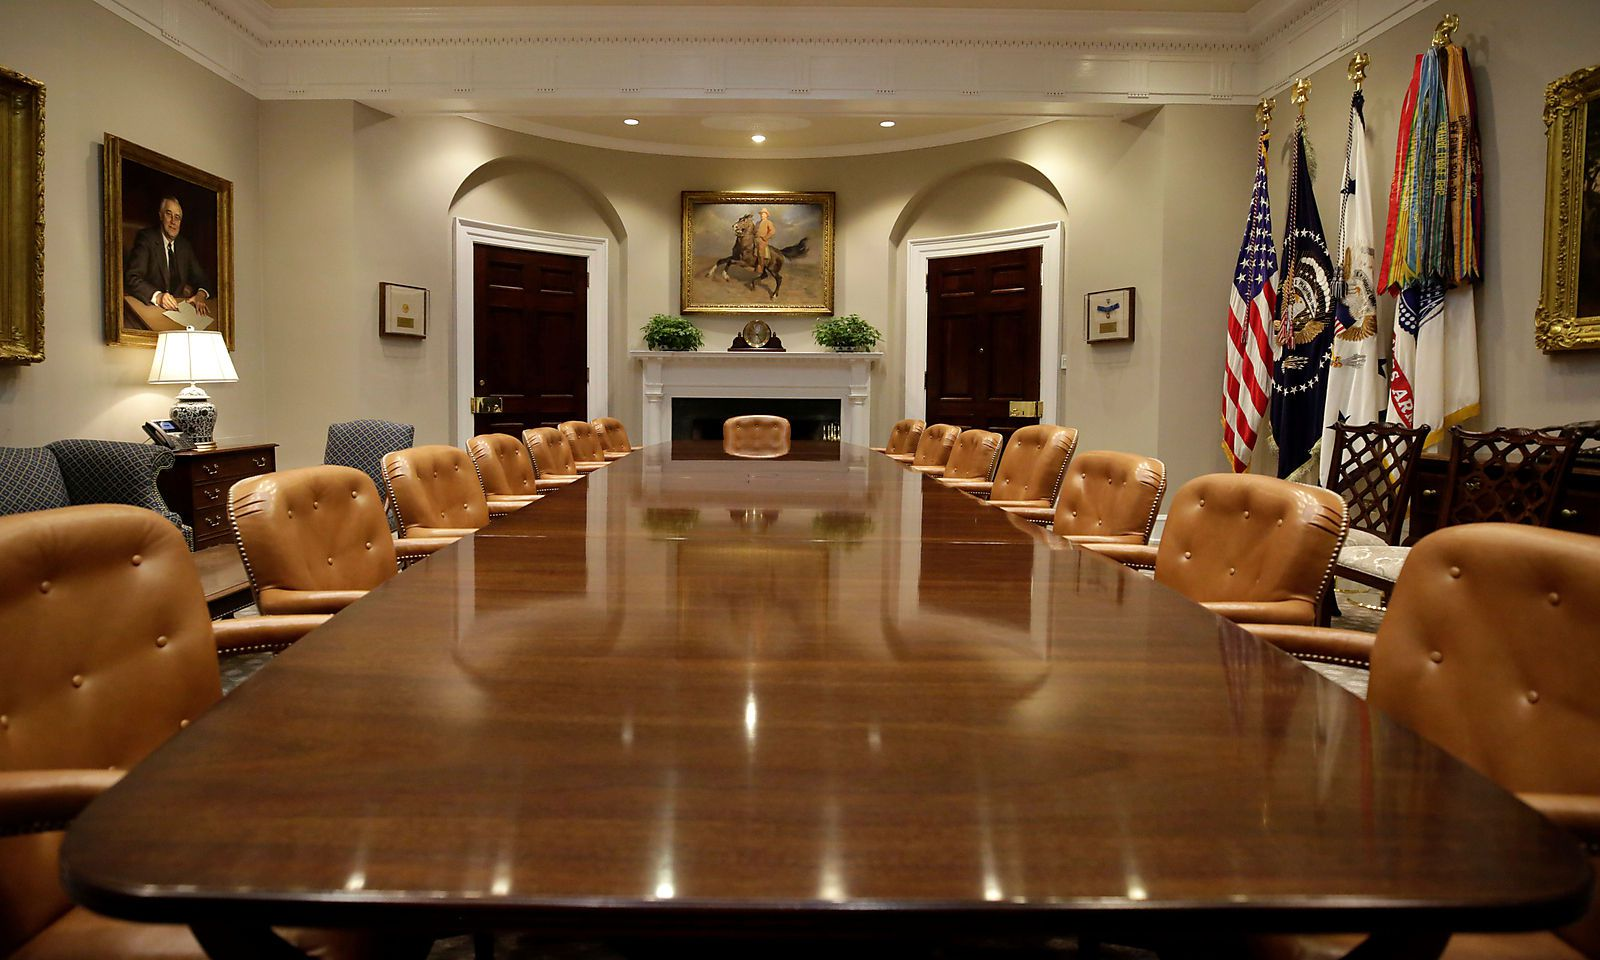 The Roosevelt Room of the White House is seen after a renovation